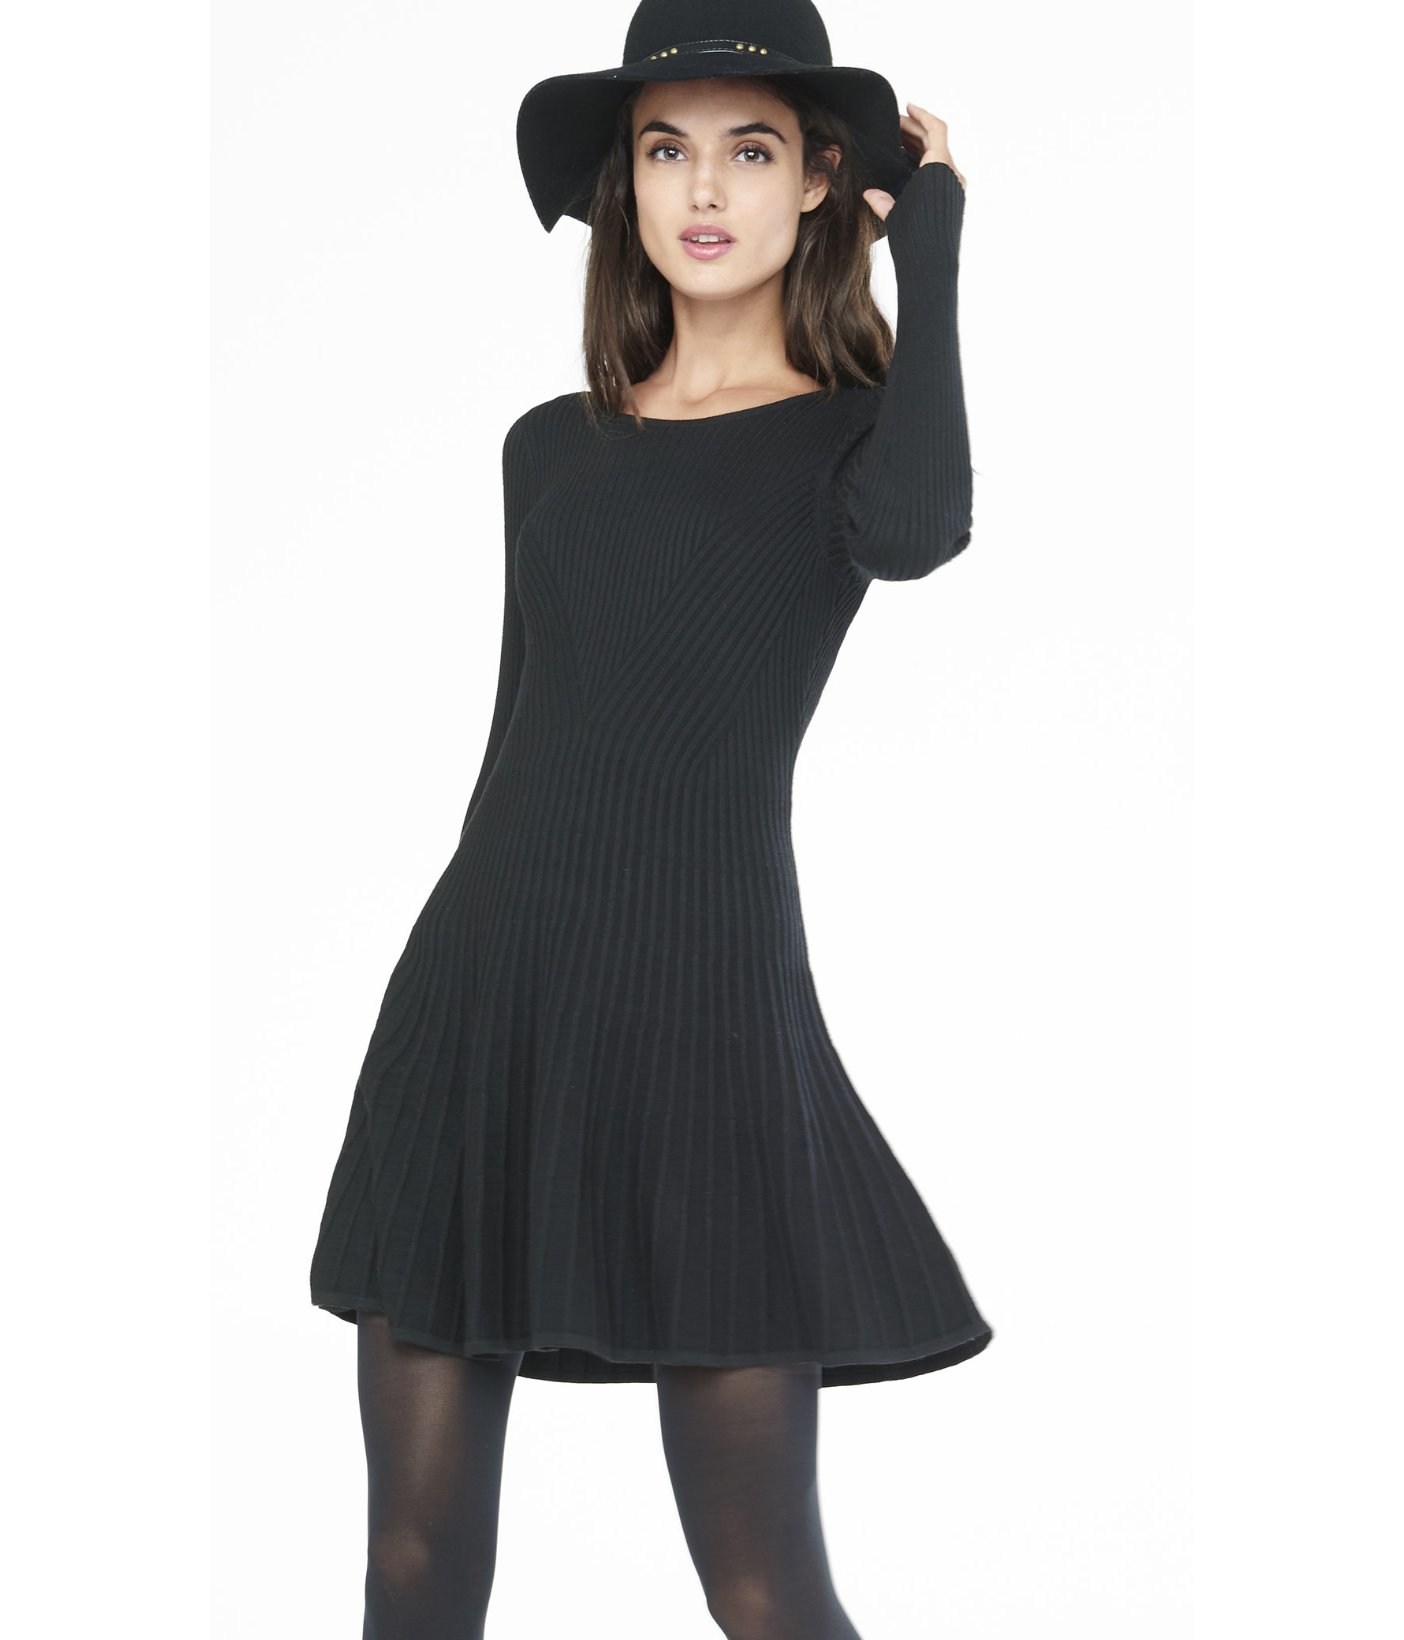 Express Black Ribbed Fit And Flare Sweater Dress In Black